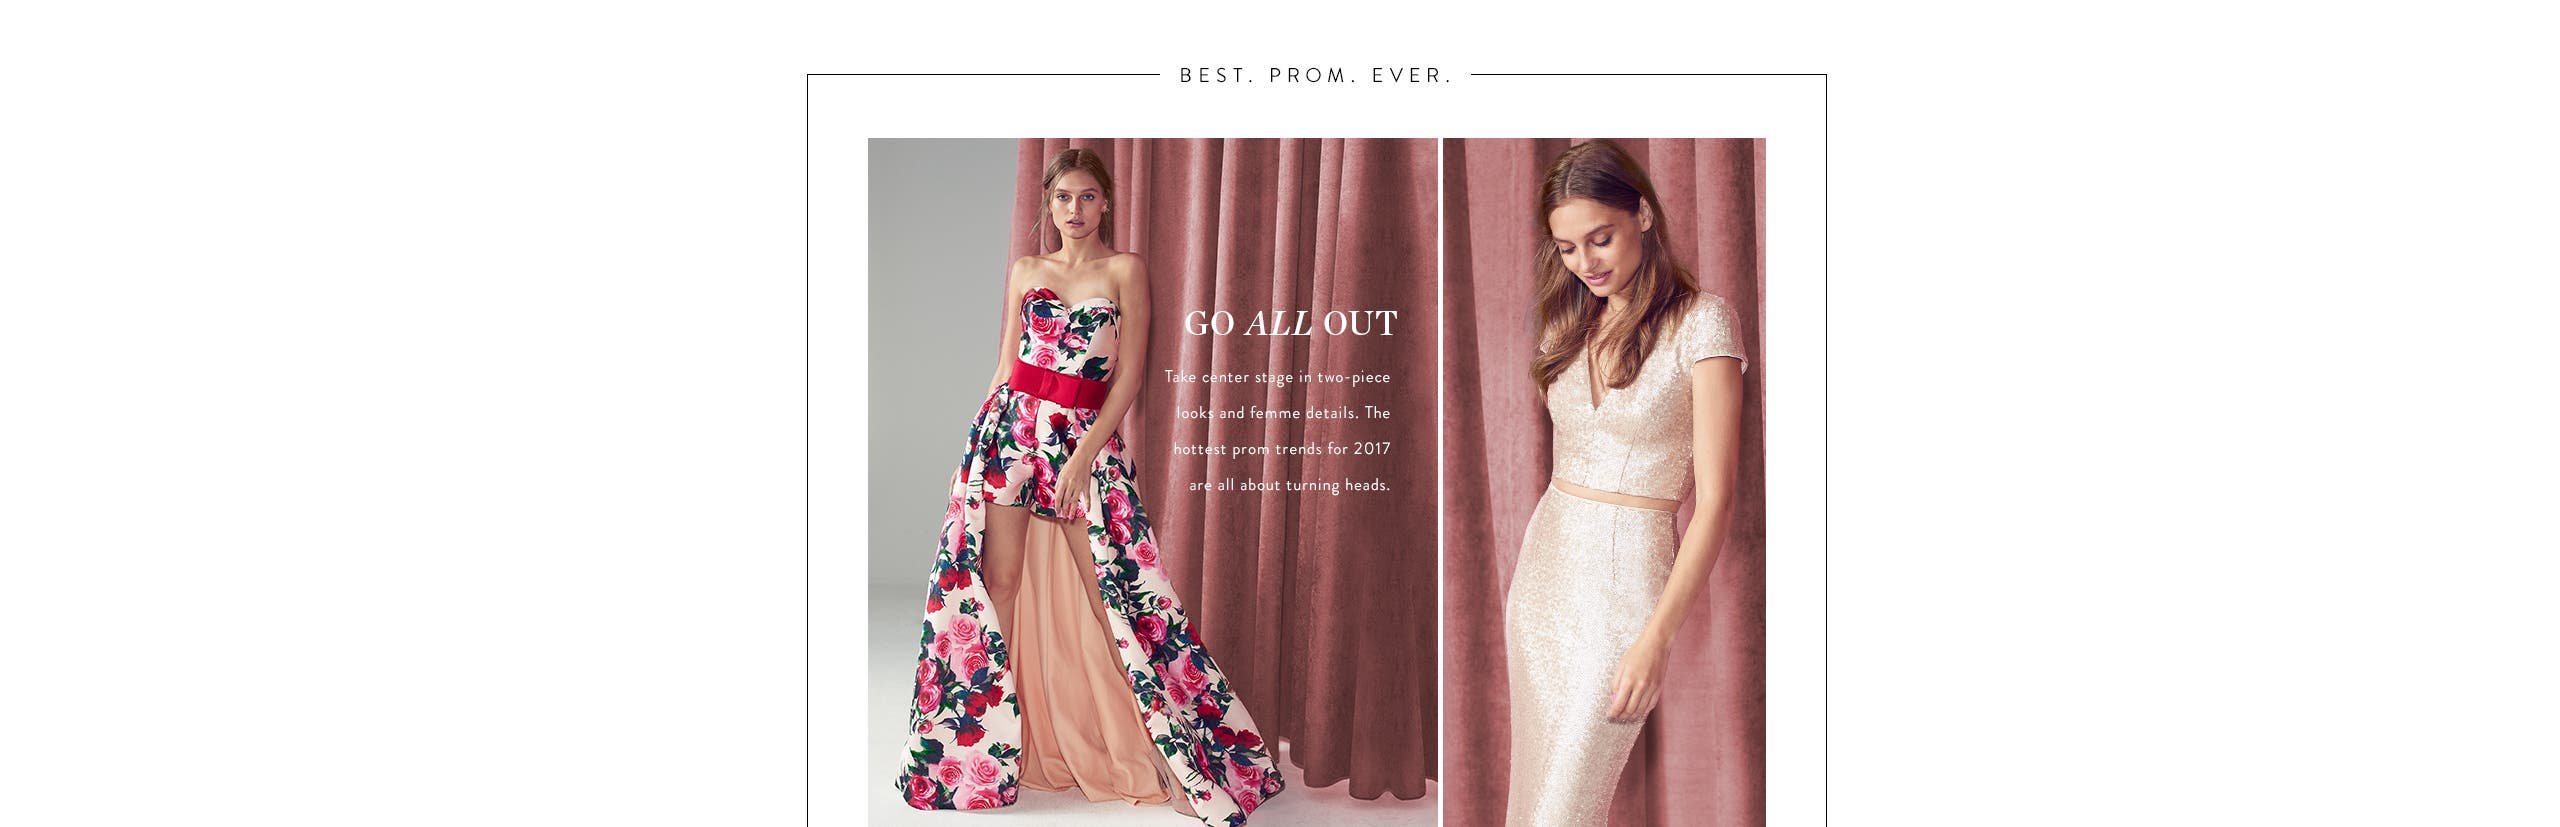 Go all out in the latest prom dress trends.